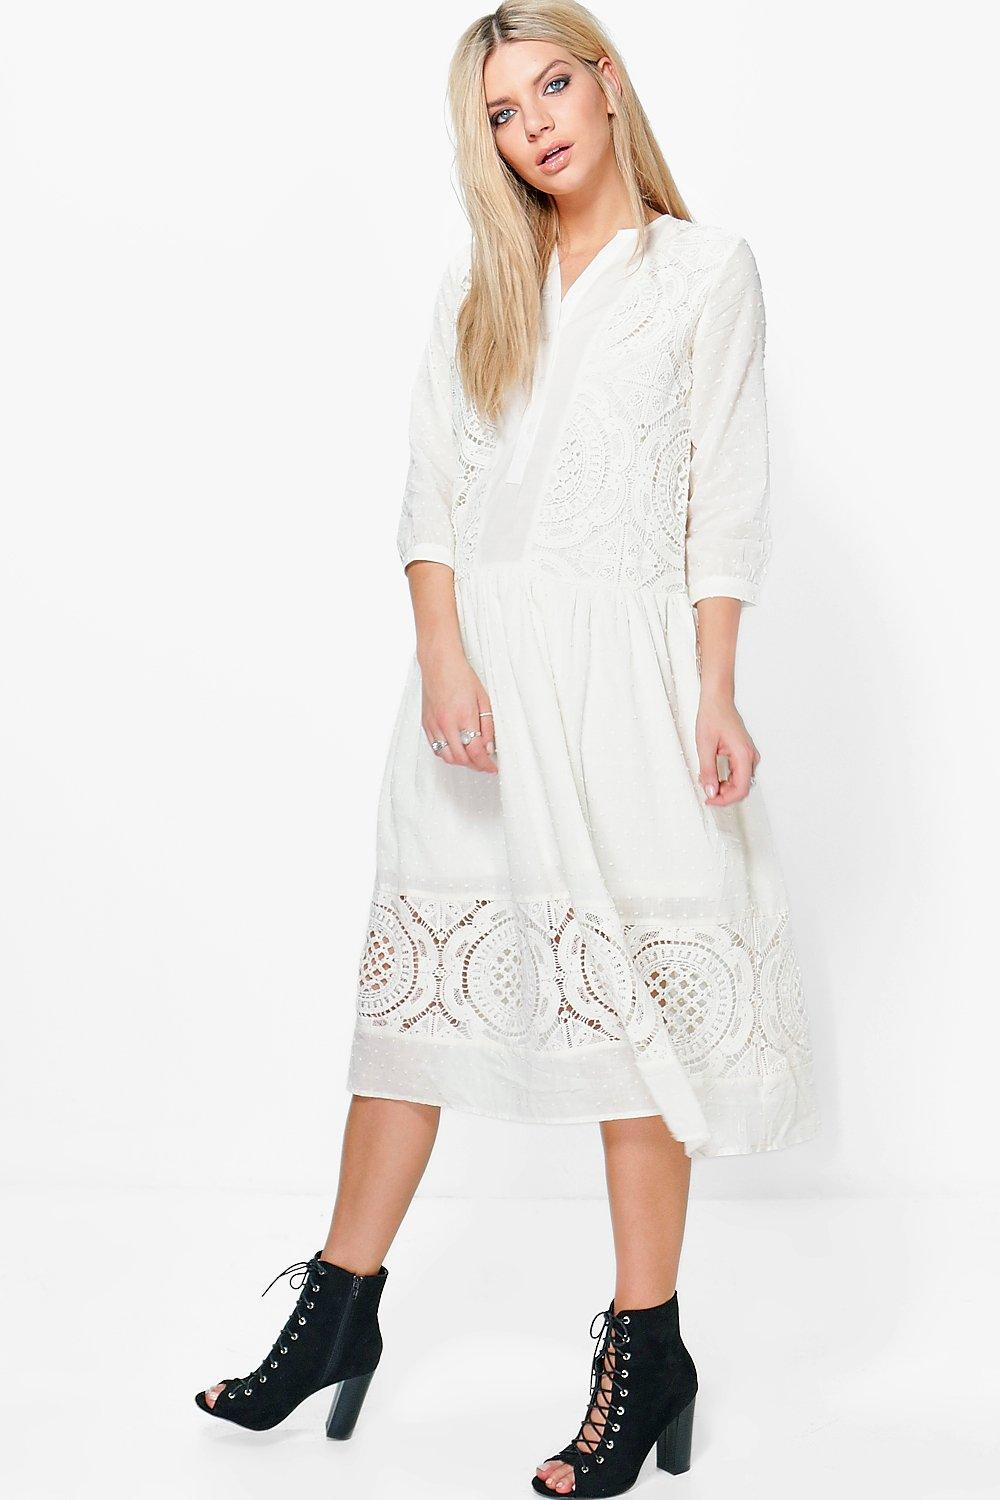 Ashley White Lace Button Up Smock Dress